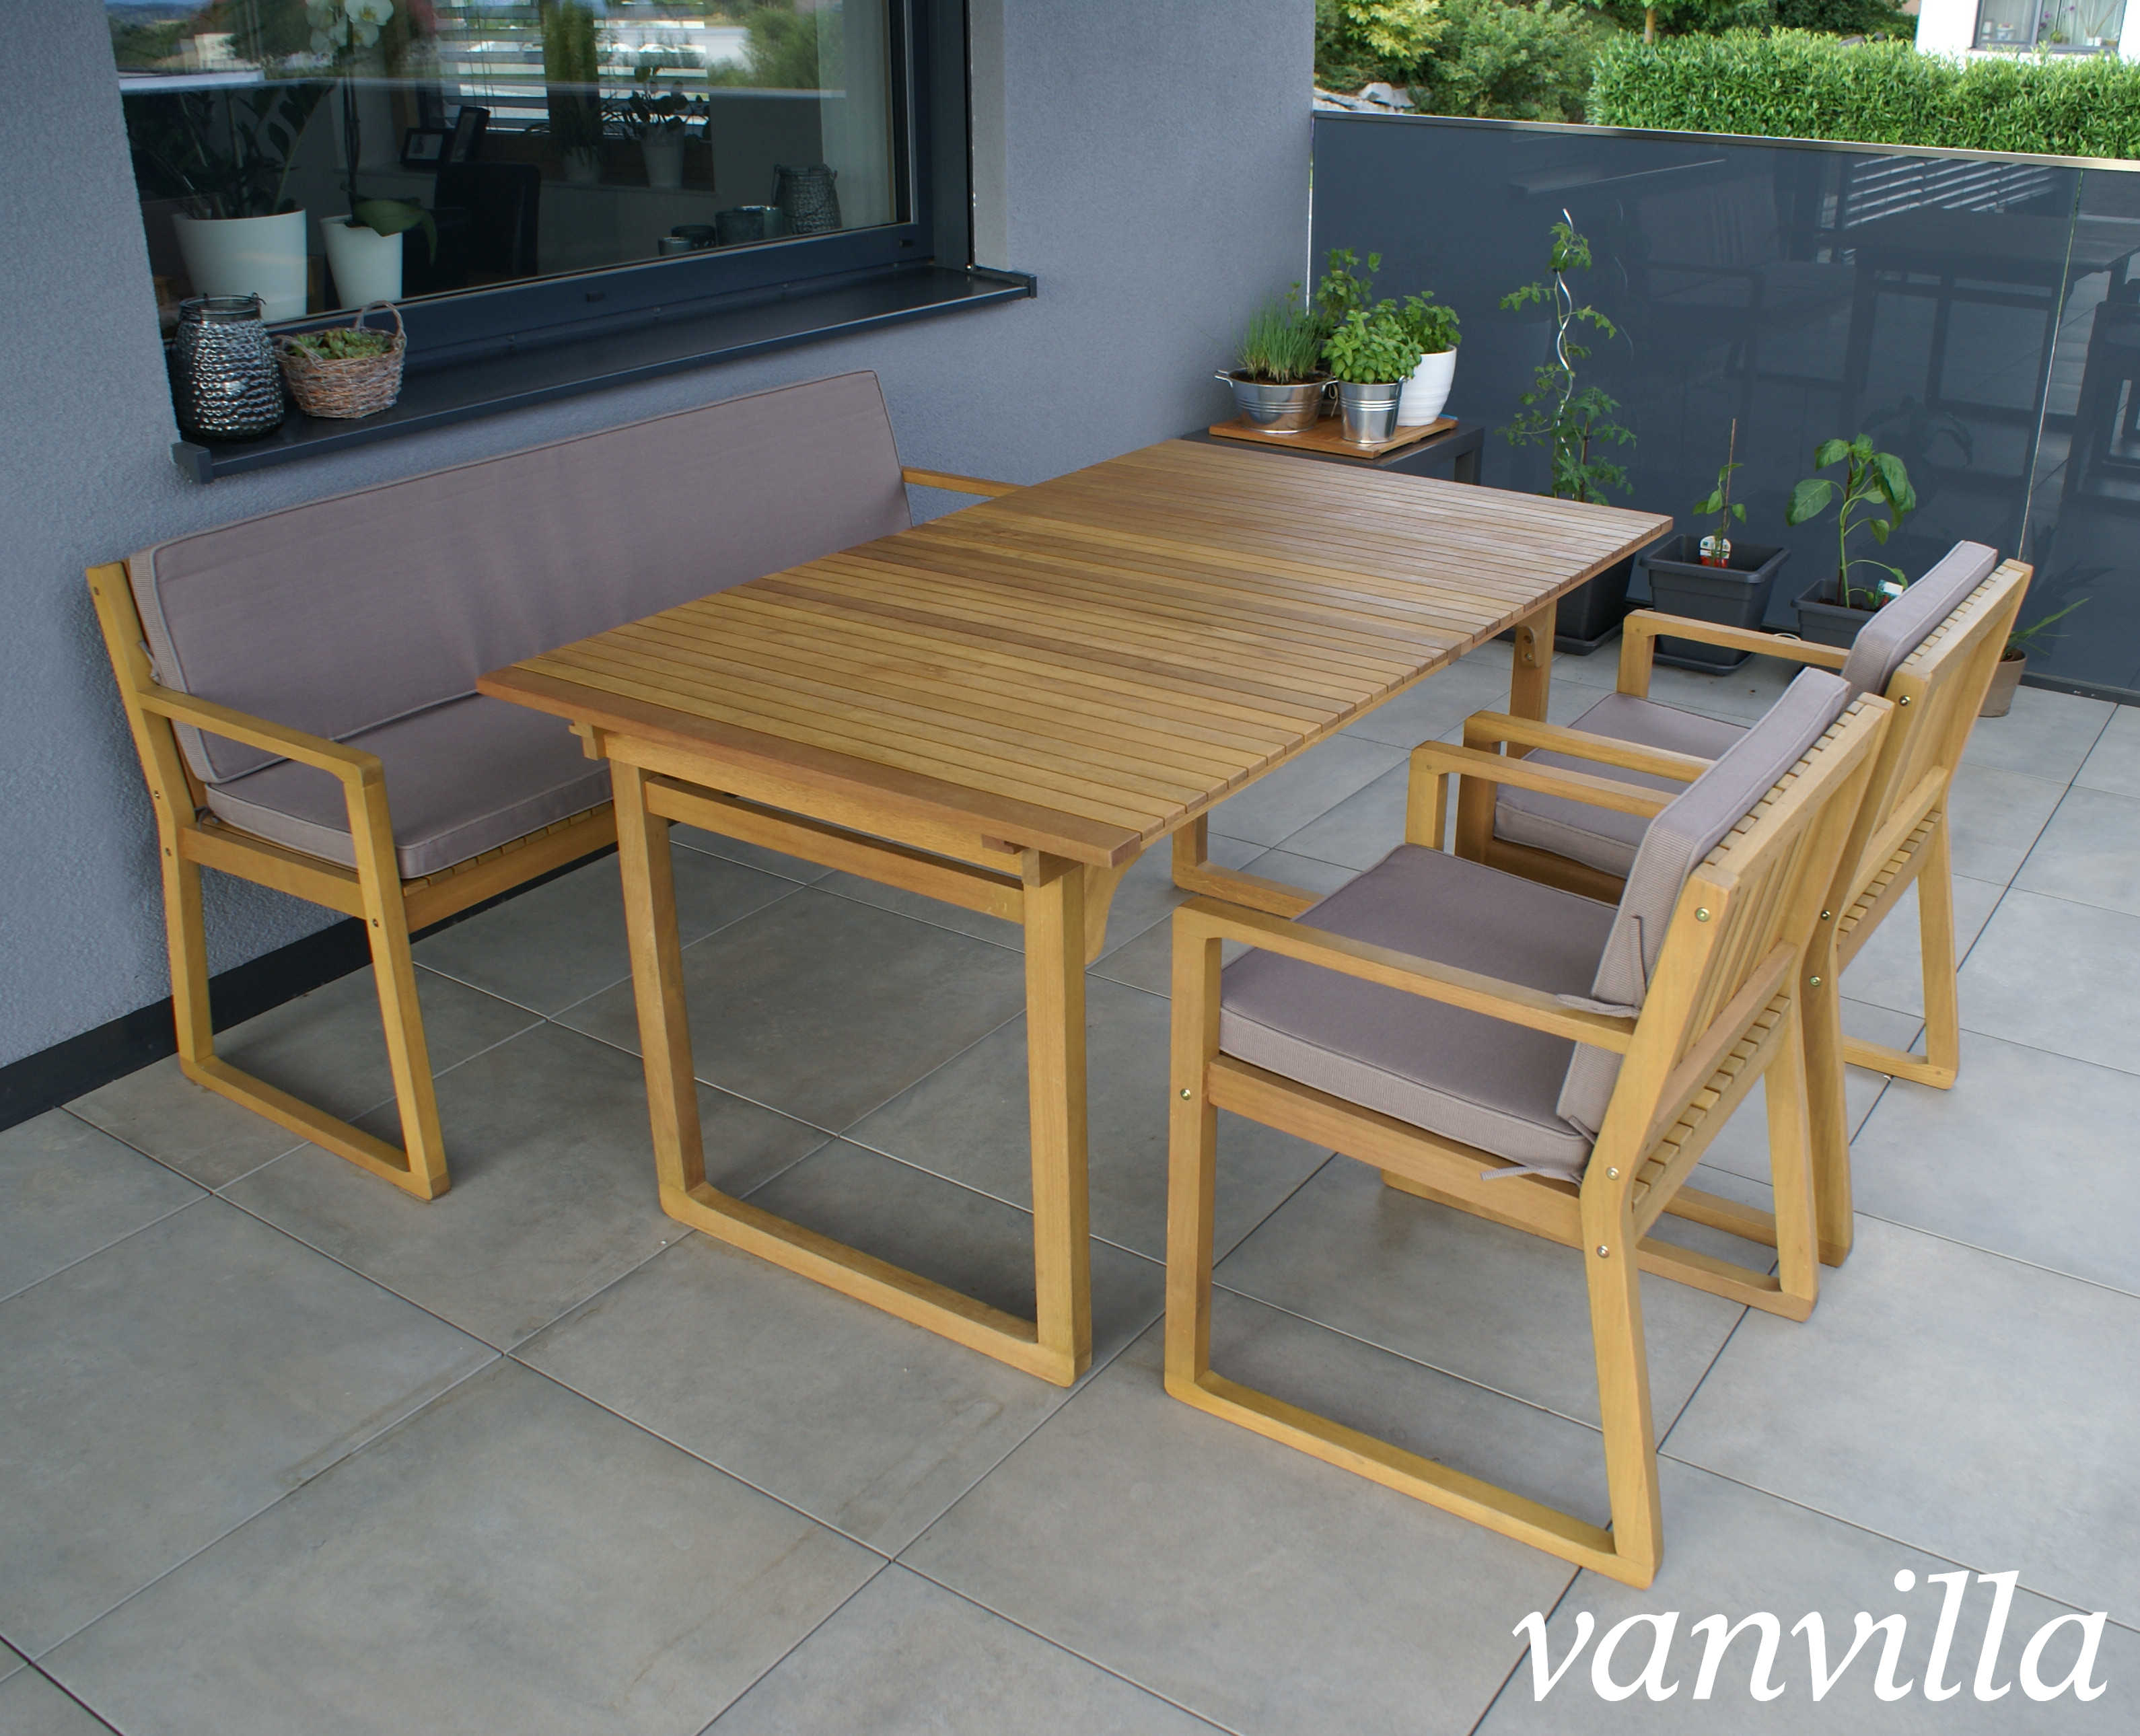 vanvilla gartenm bel set holz 1 tisch 1 bank 2 sessel set6 auflage braun. Black Bedroom Furniture Sets. Home Design Ideas